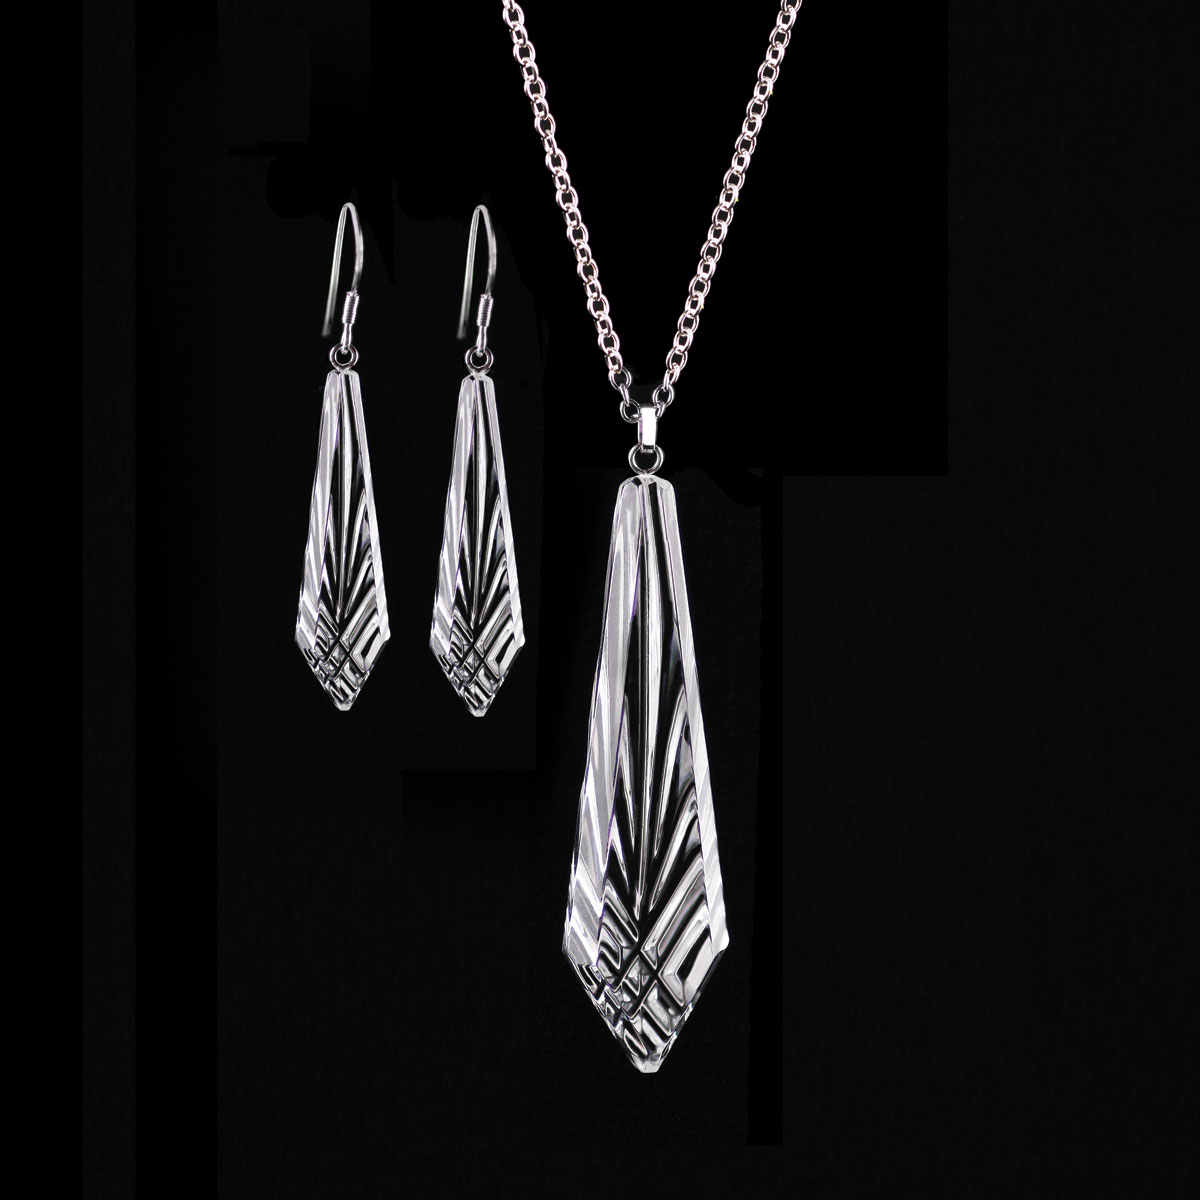 Cashs Ireland, Crystal Annestown Icicle Sterling Necklace and Earrings Gift Set